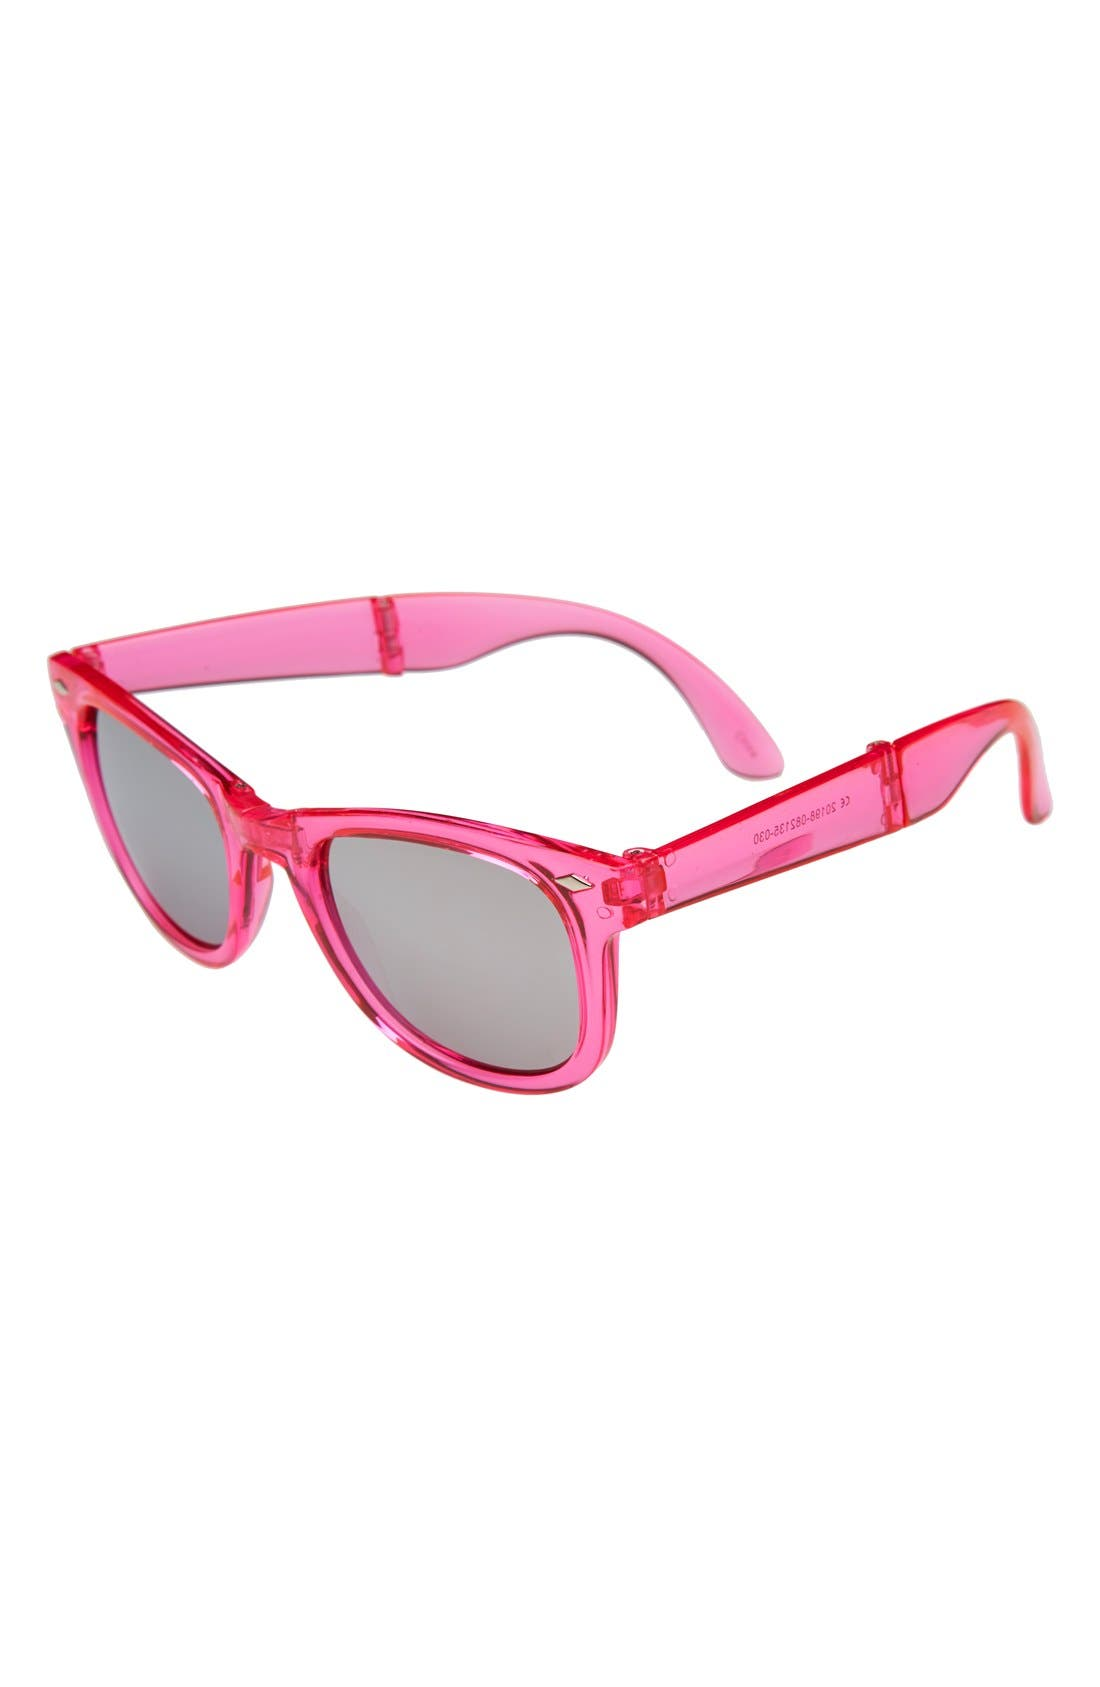 Alternate Image 1 Selected - Icon Eyewear Foldable Sunglasses (Girls)